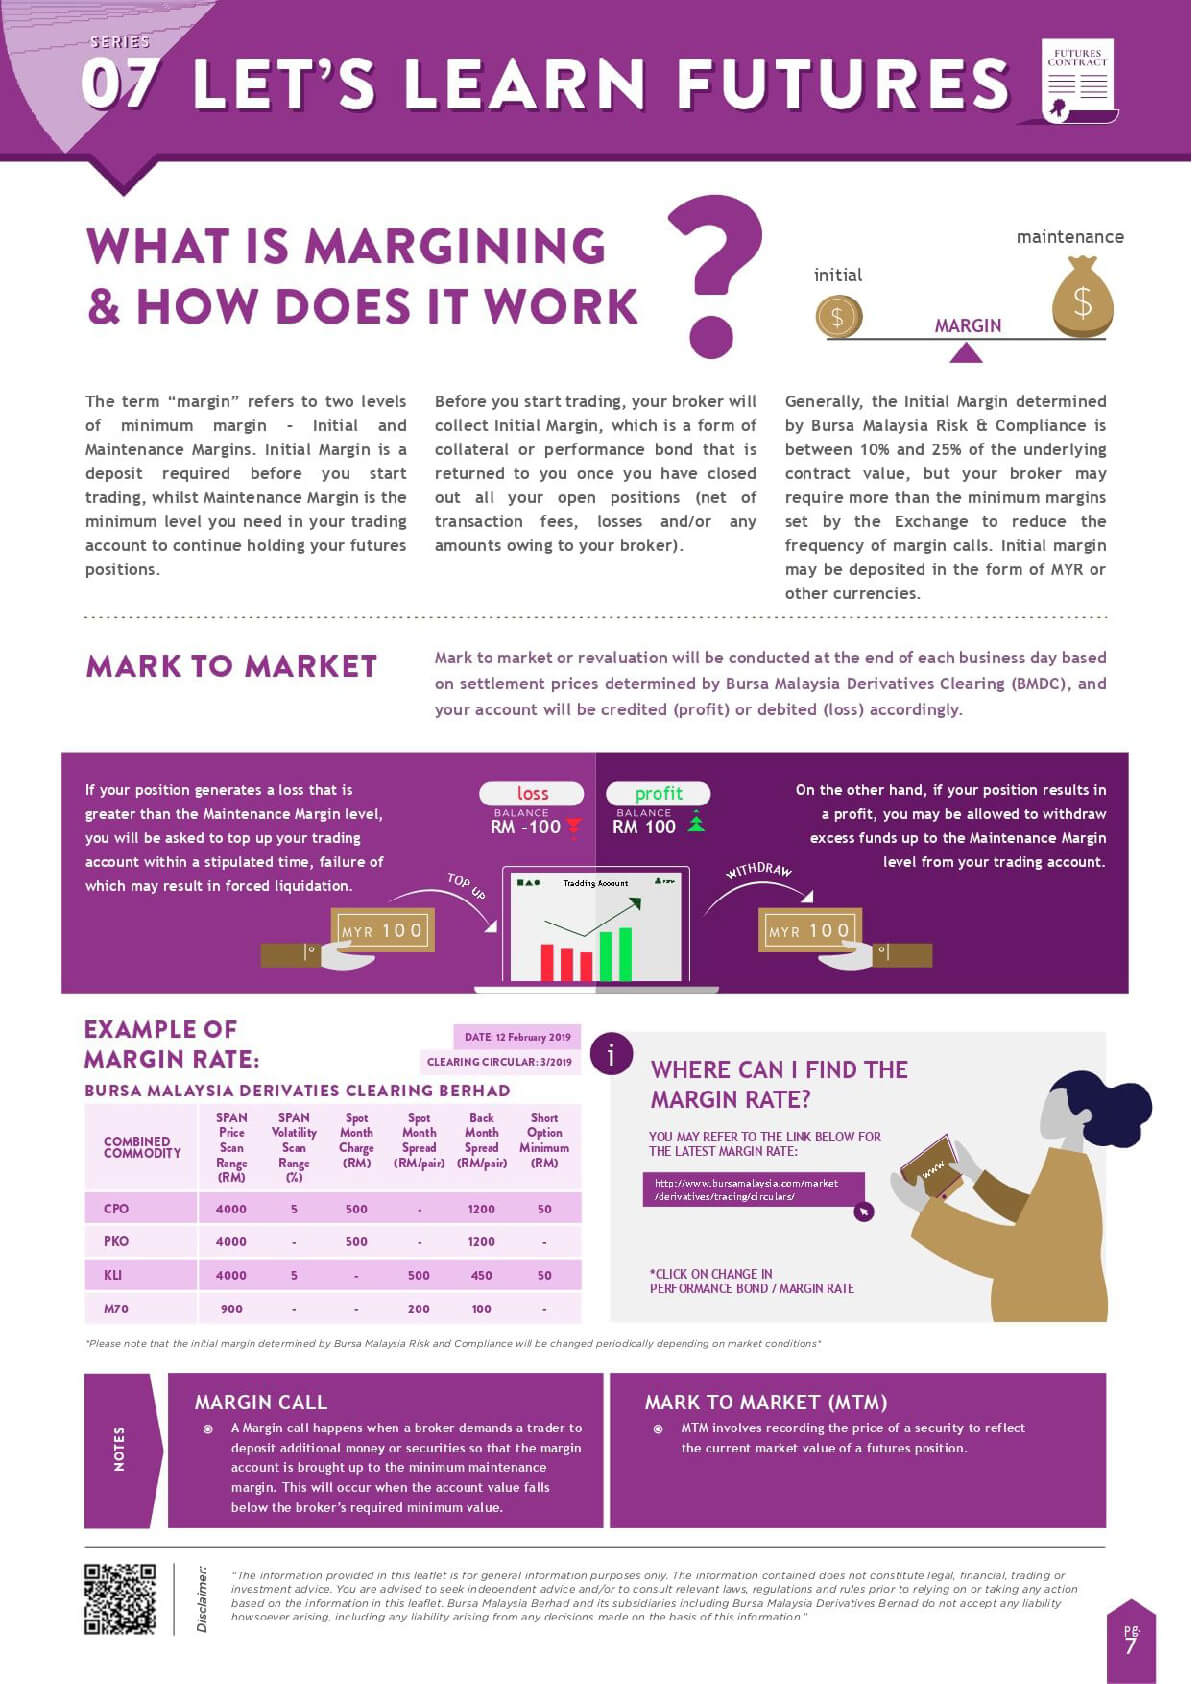 Let's Learn Futures - Infographic Series 07